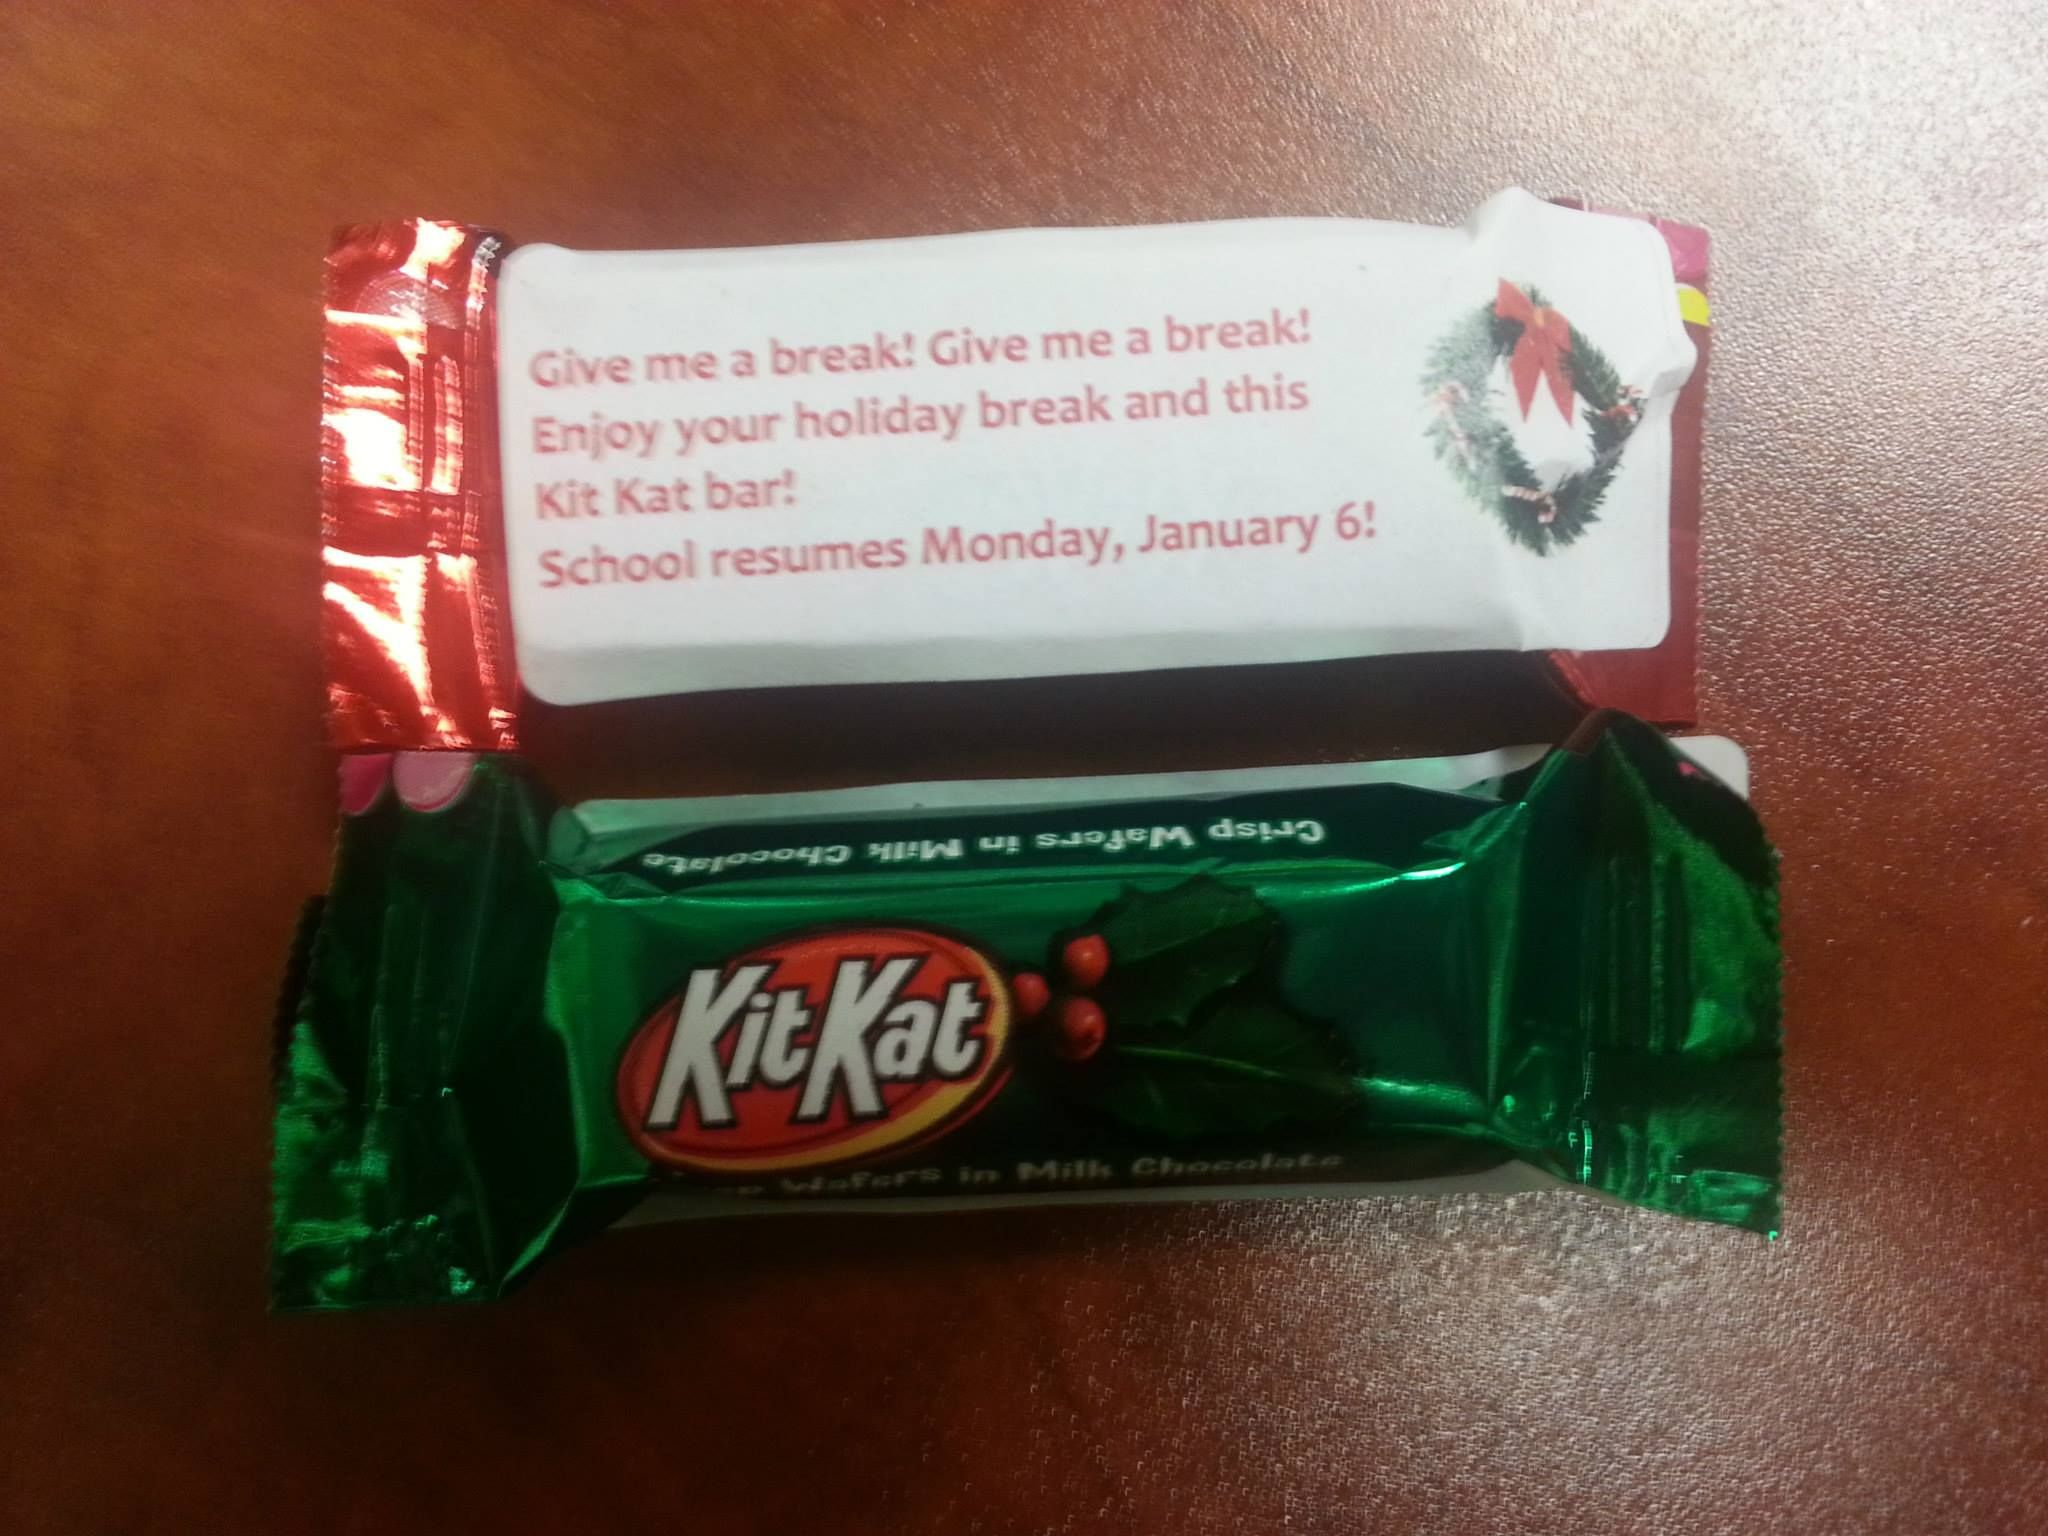 Before the holiday break, Mesa campus faculty/staff handed out treats to our students with a fun reminder that classes will resume Monday, January 6, 2014. Break time!